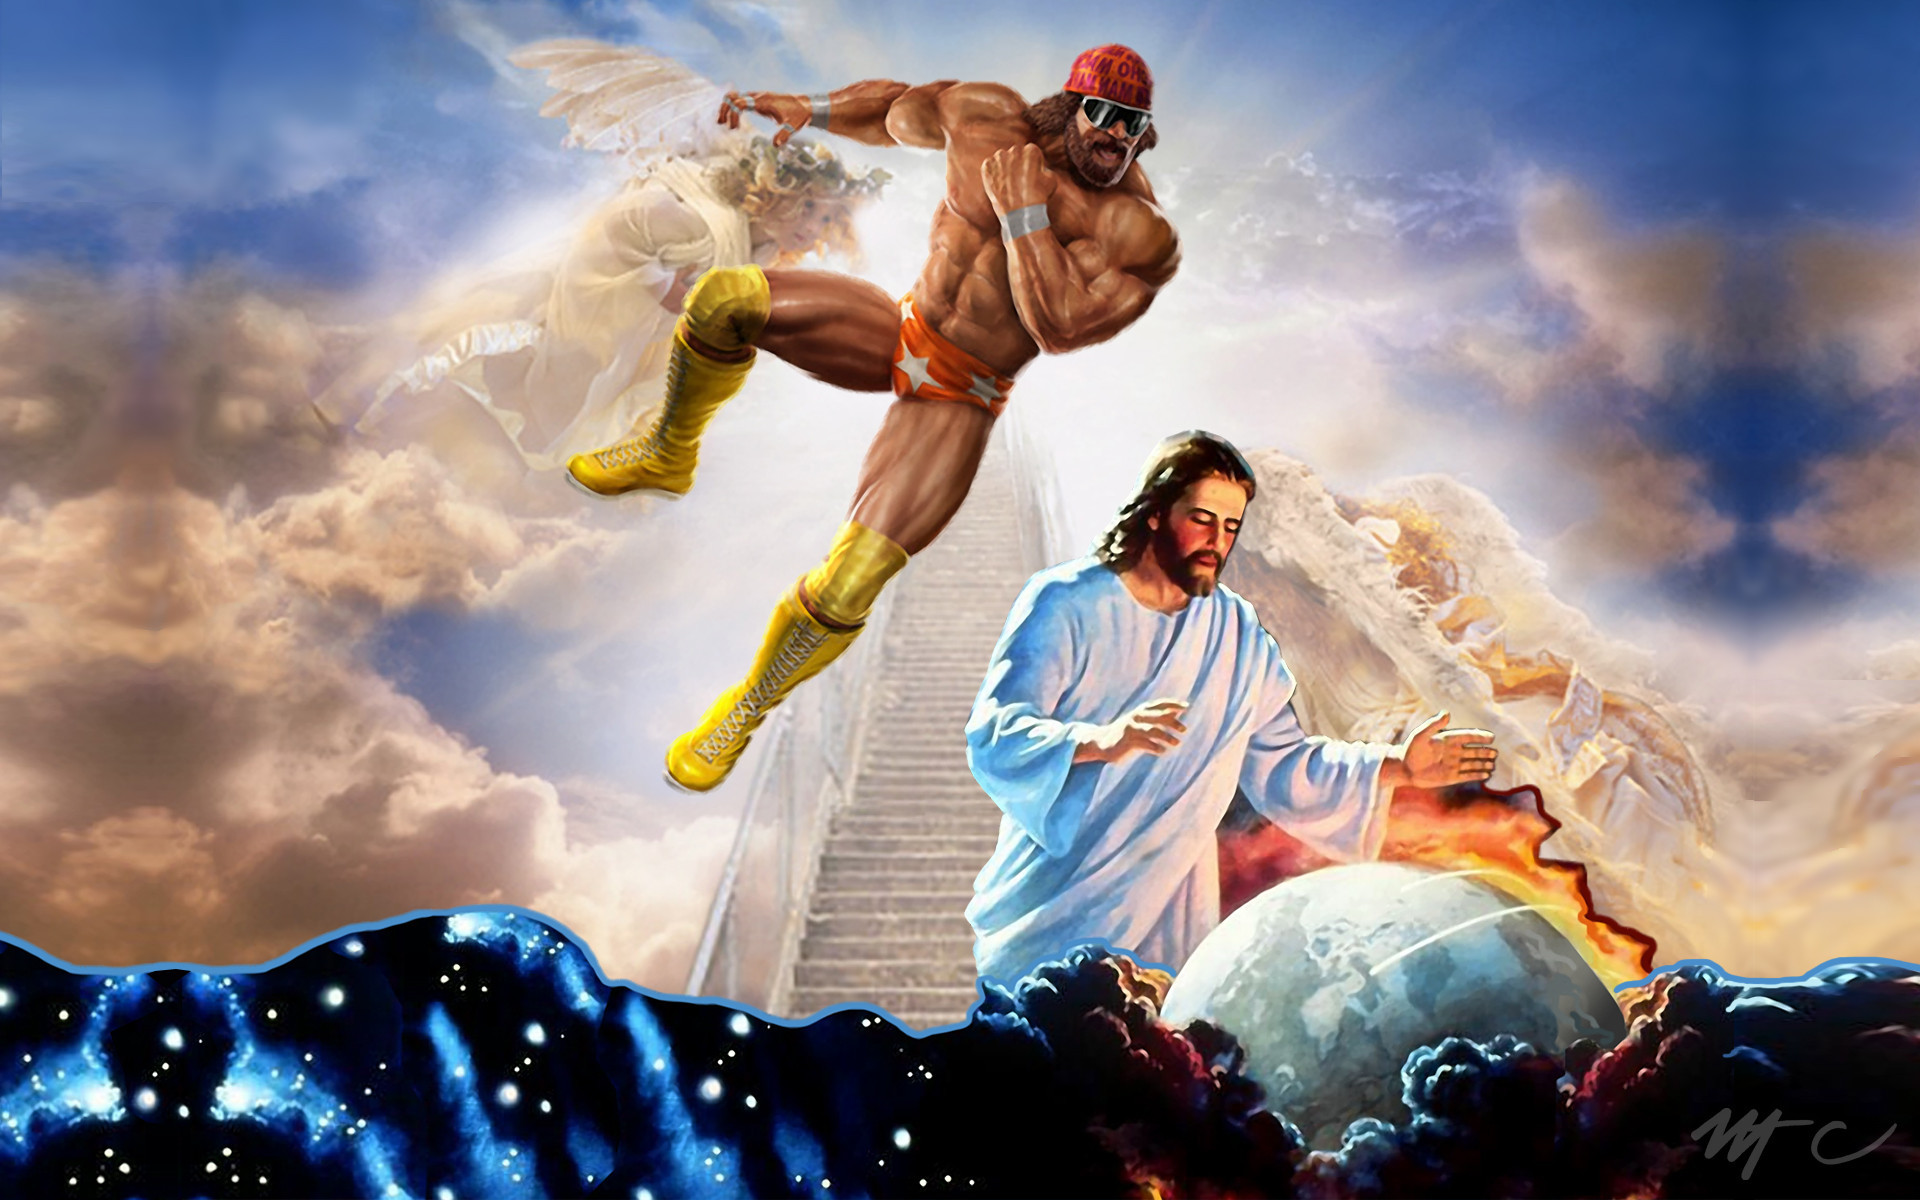 1920x1200 Macho Man Randy Savage Jesus wallpaper 253728